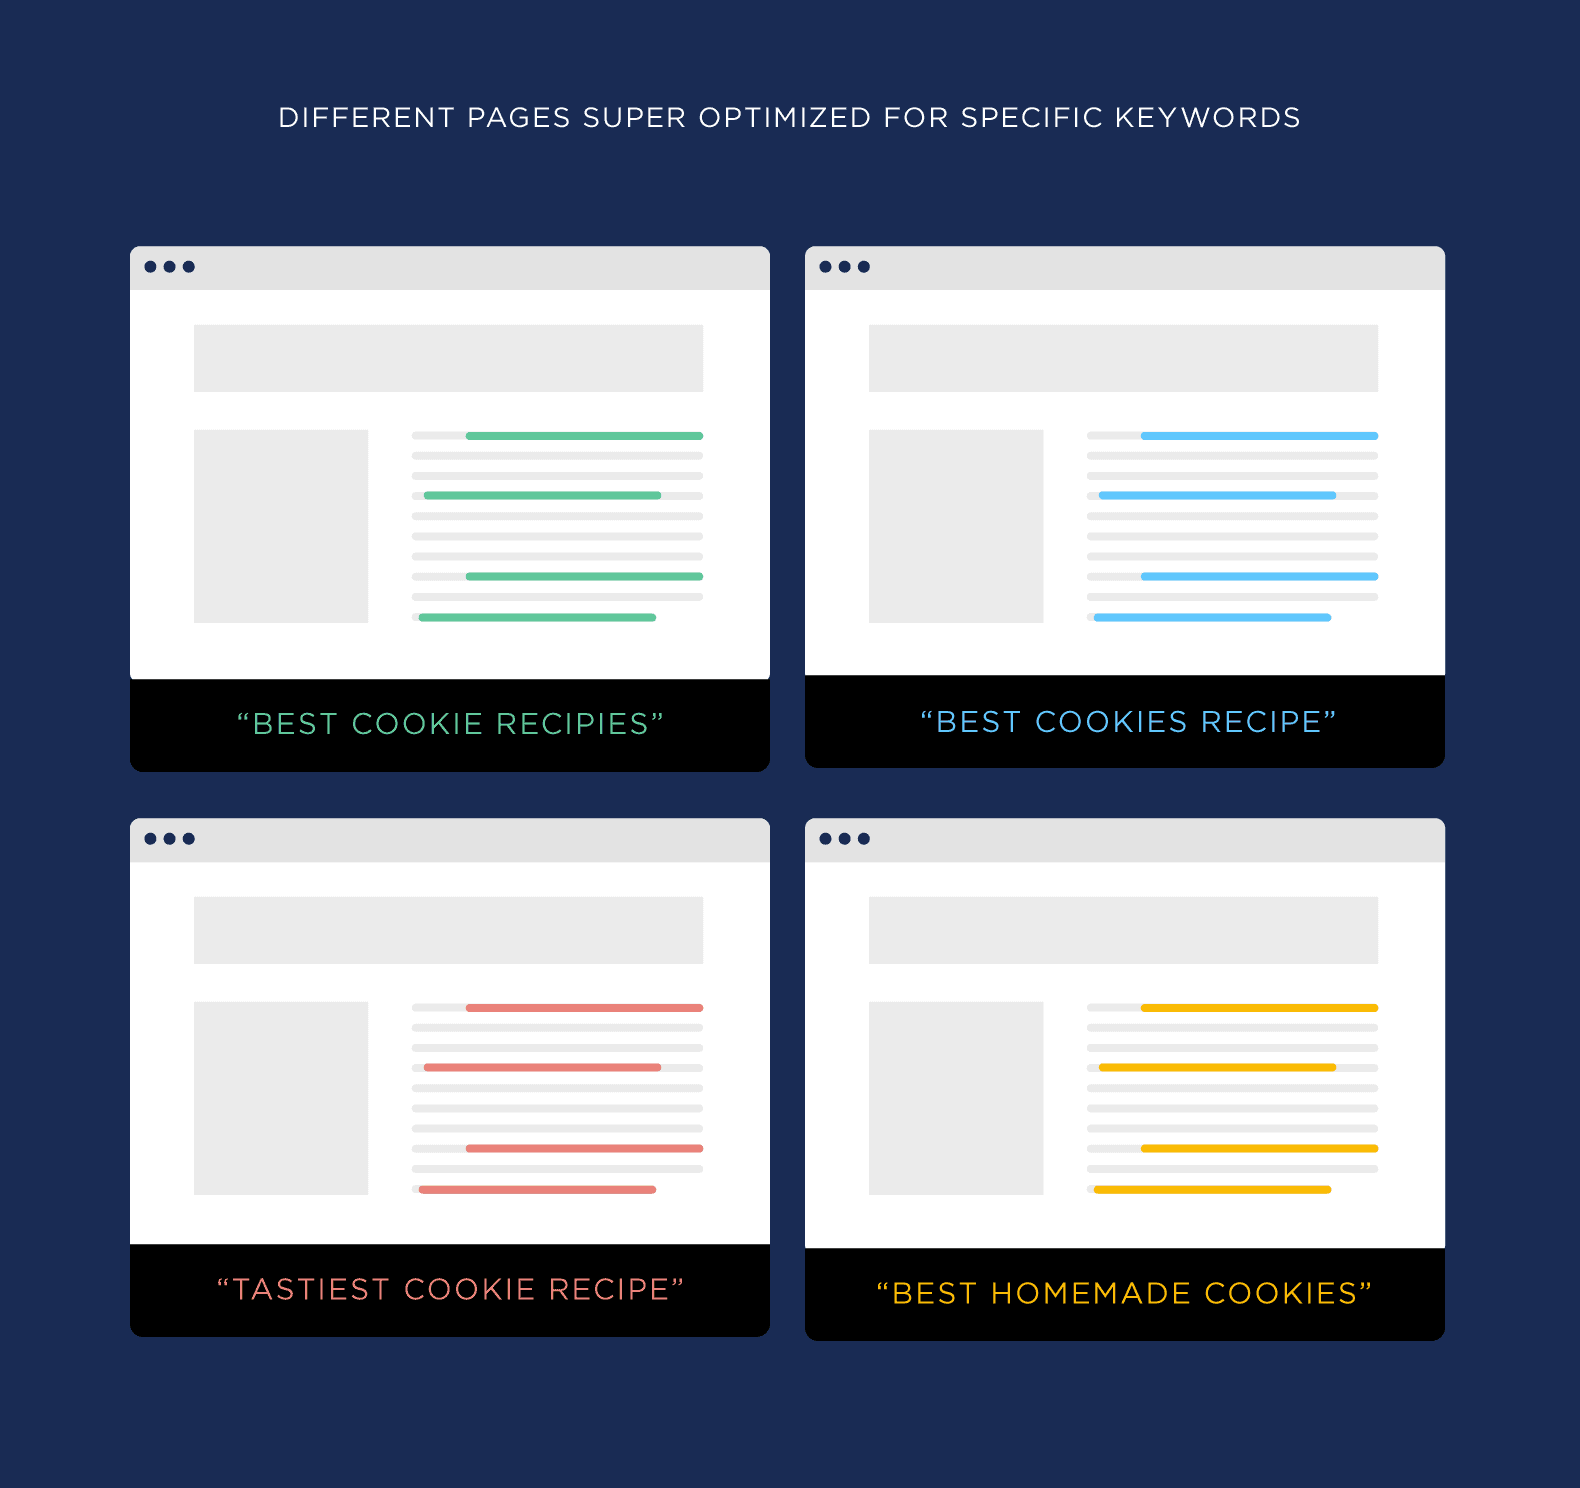 Different pages super optimized for specific keywords